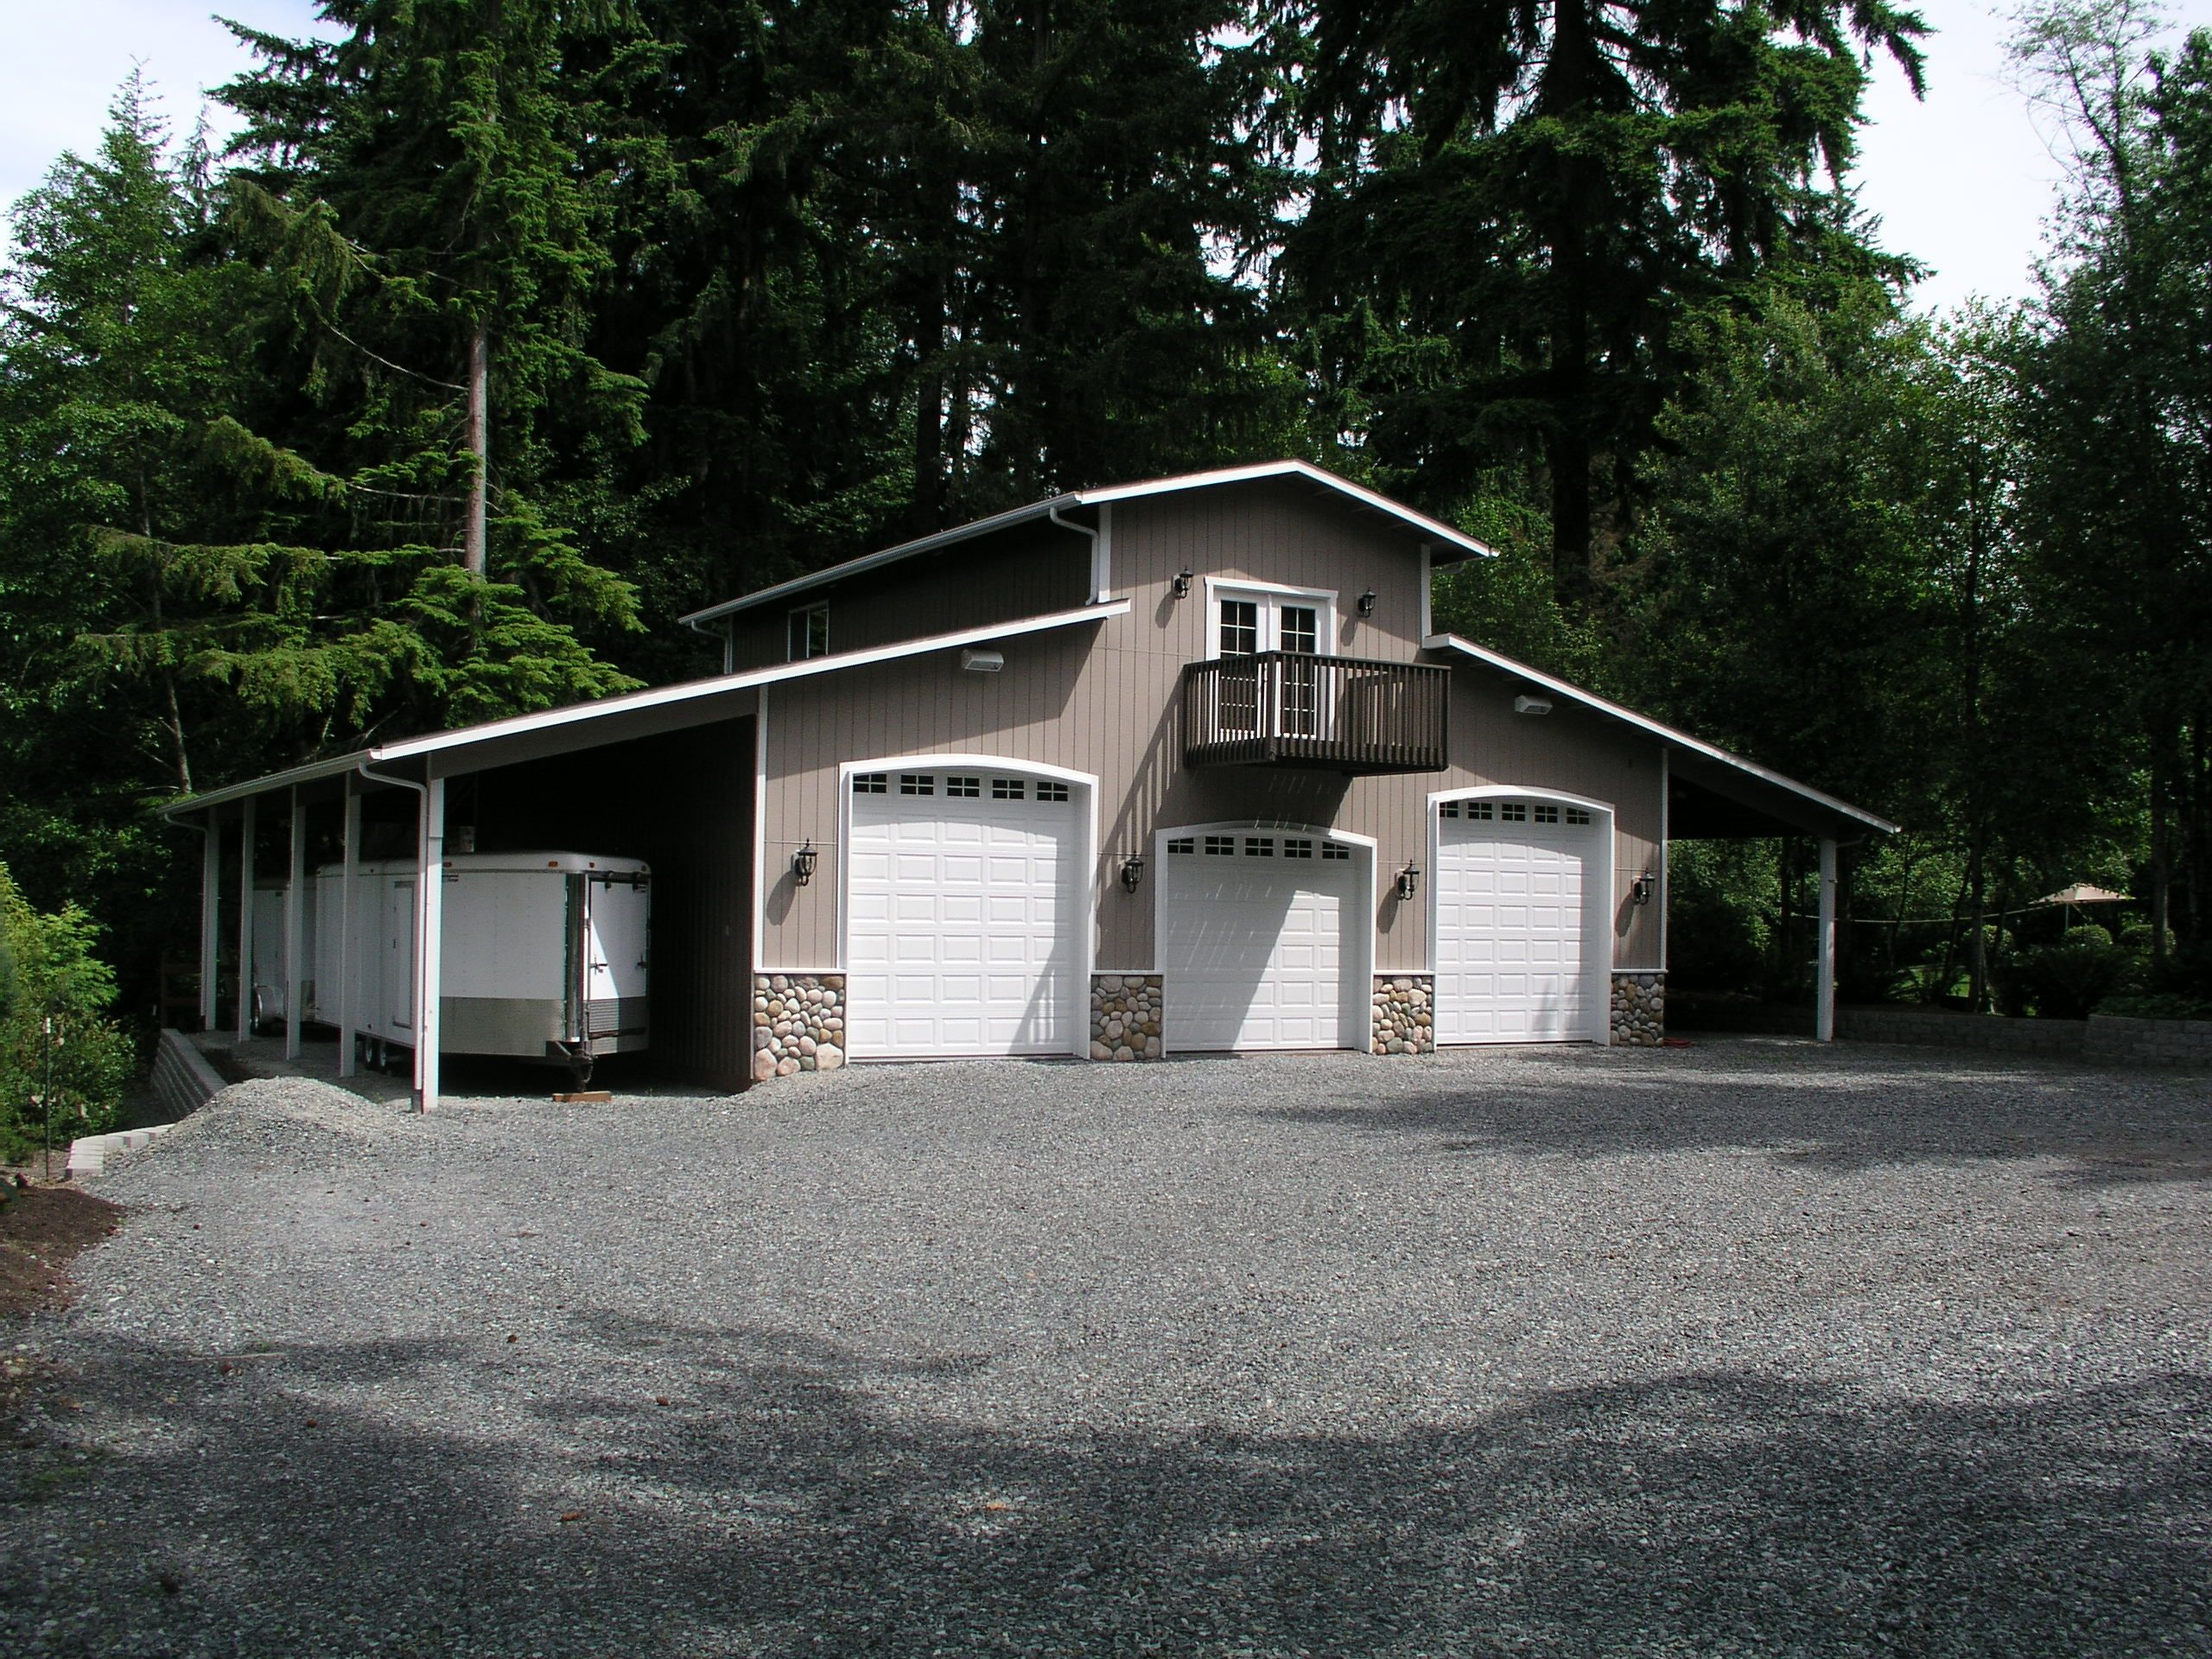 Garage Apartment Plans With Rv Storage How To Construct A Simple Garage Pole Barn Style In 2019 Garages